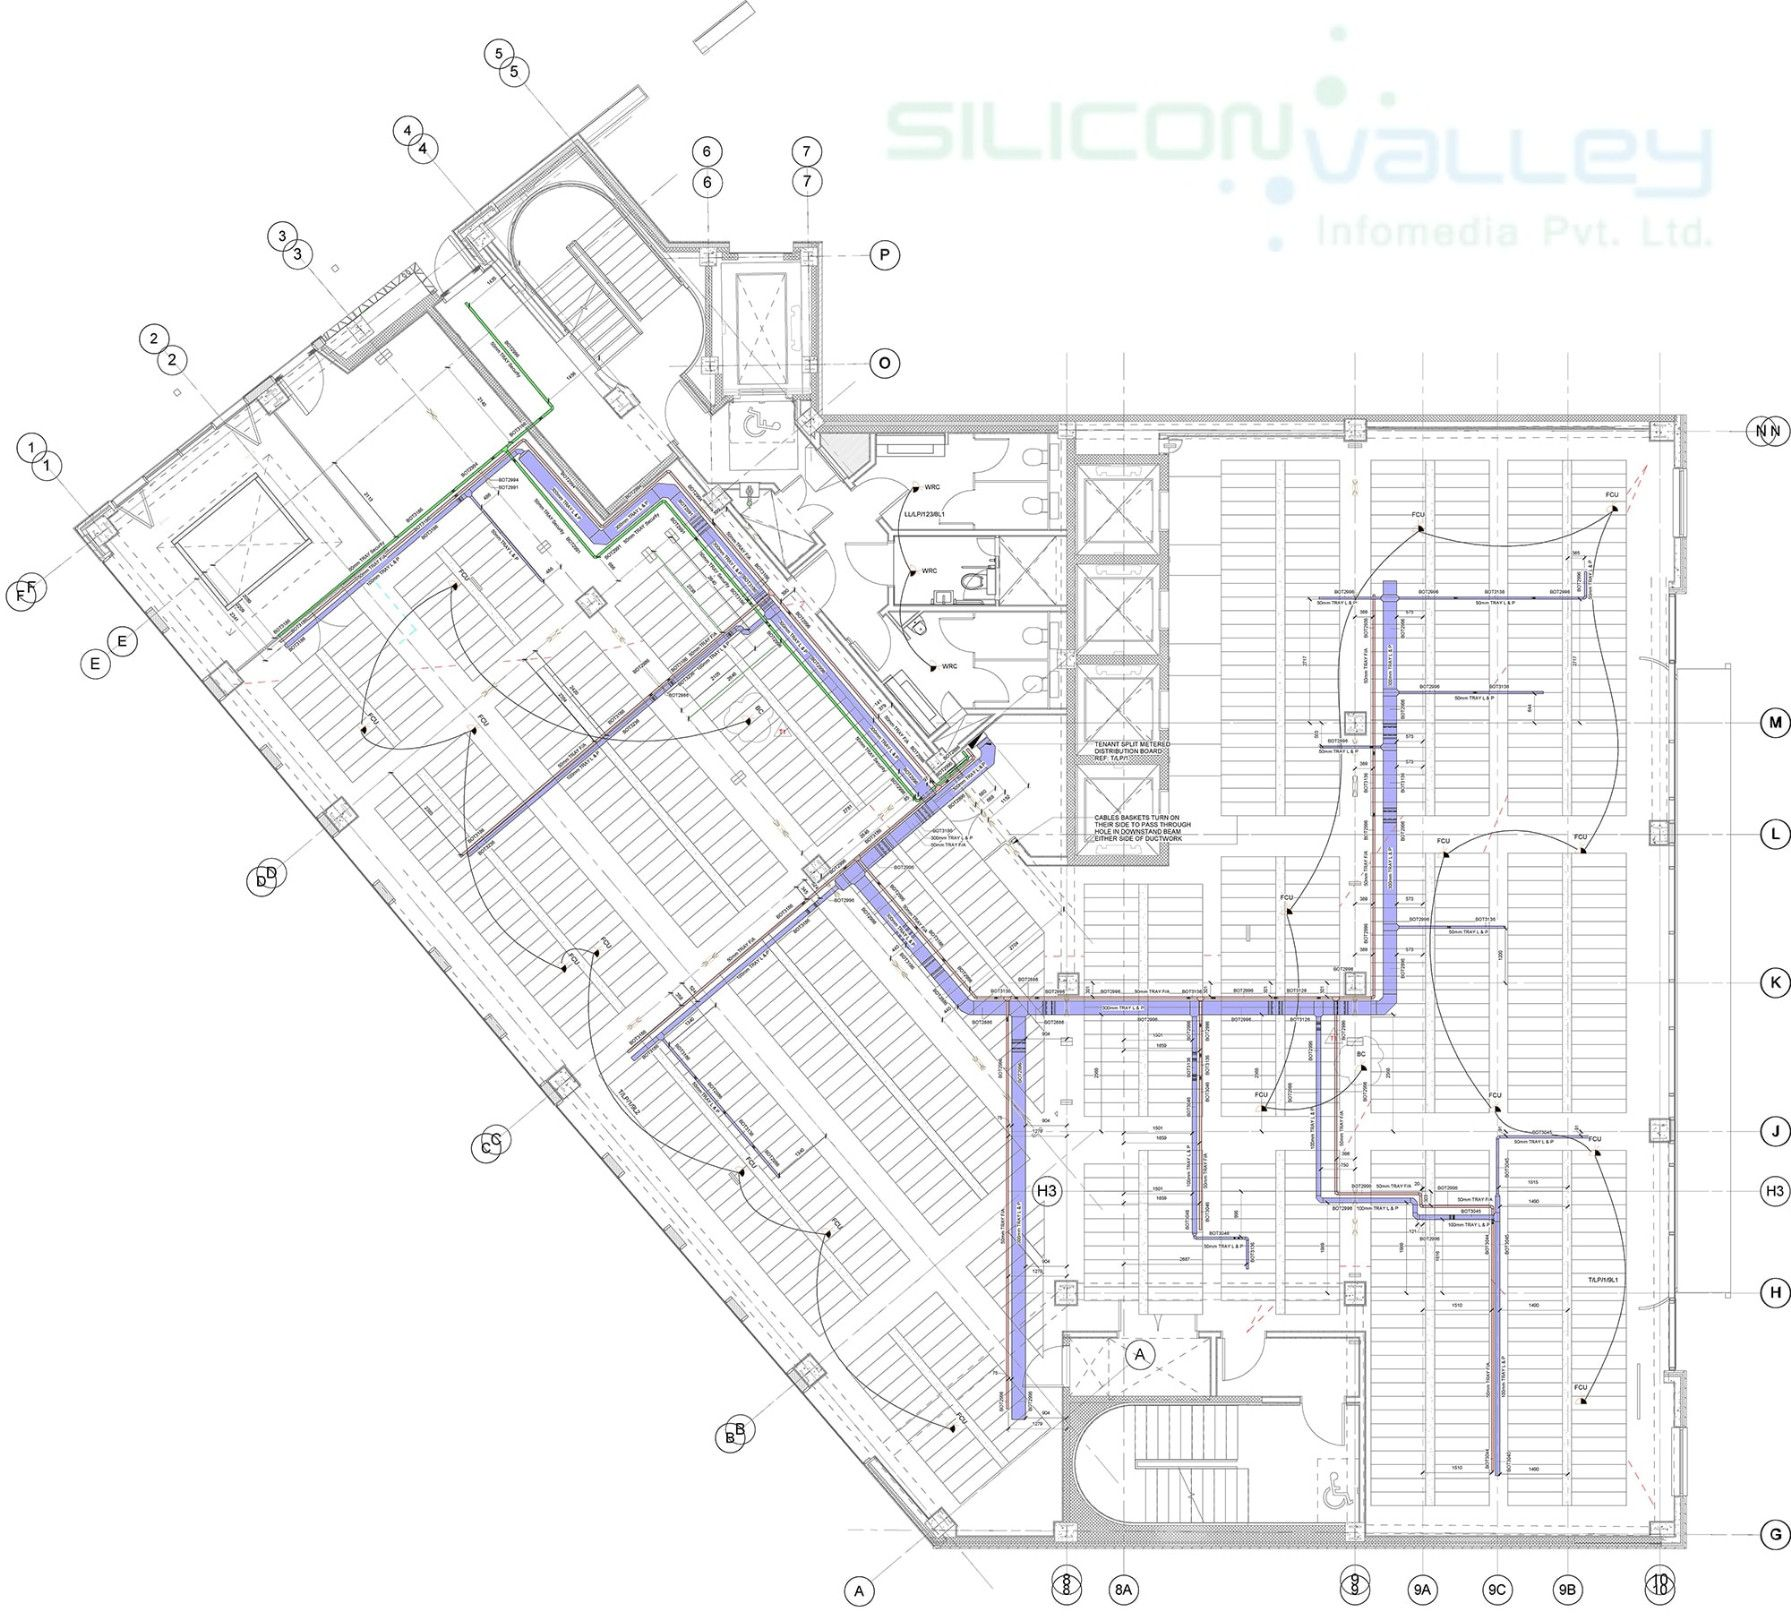 small resolution of  silicon info provides mep shop drawing detailing services for